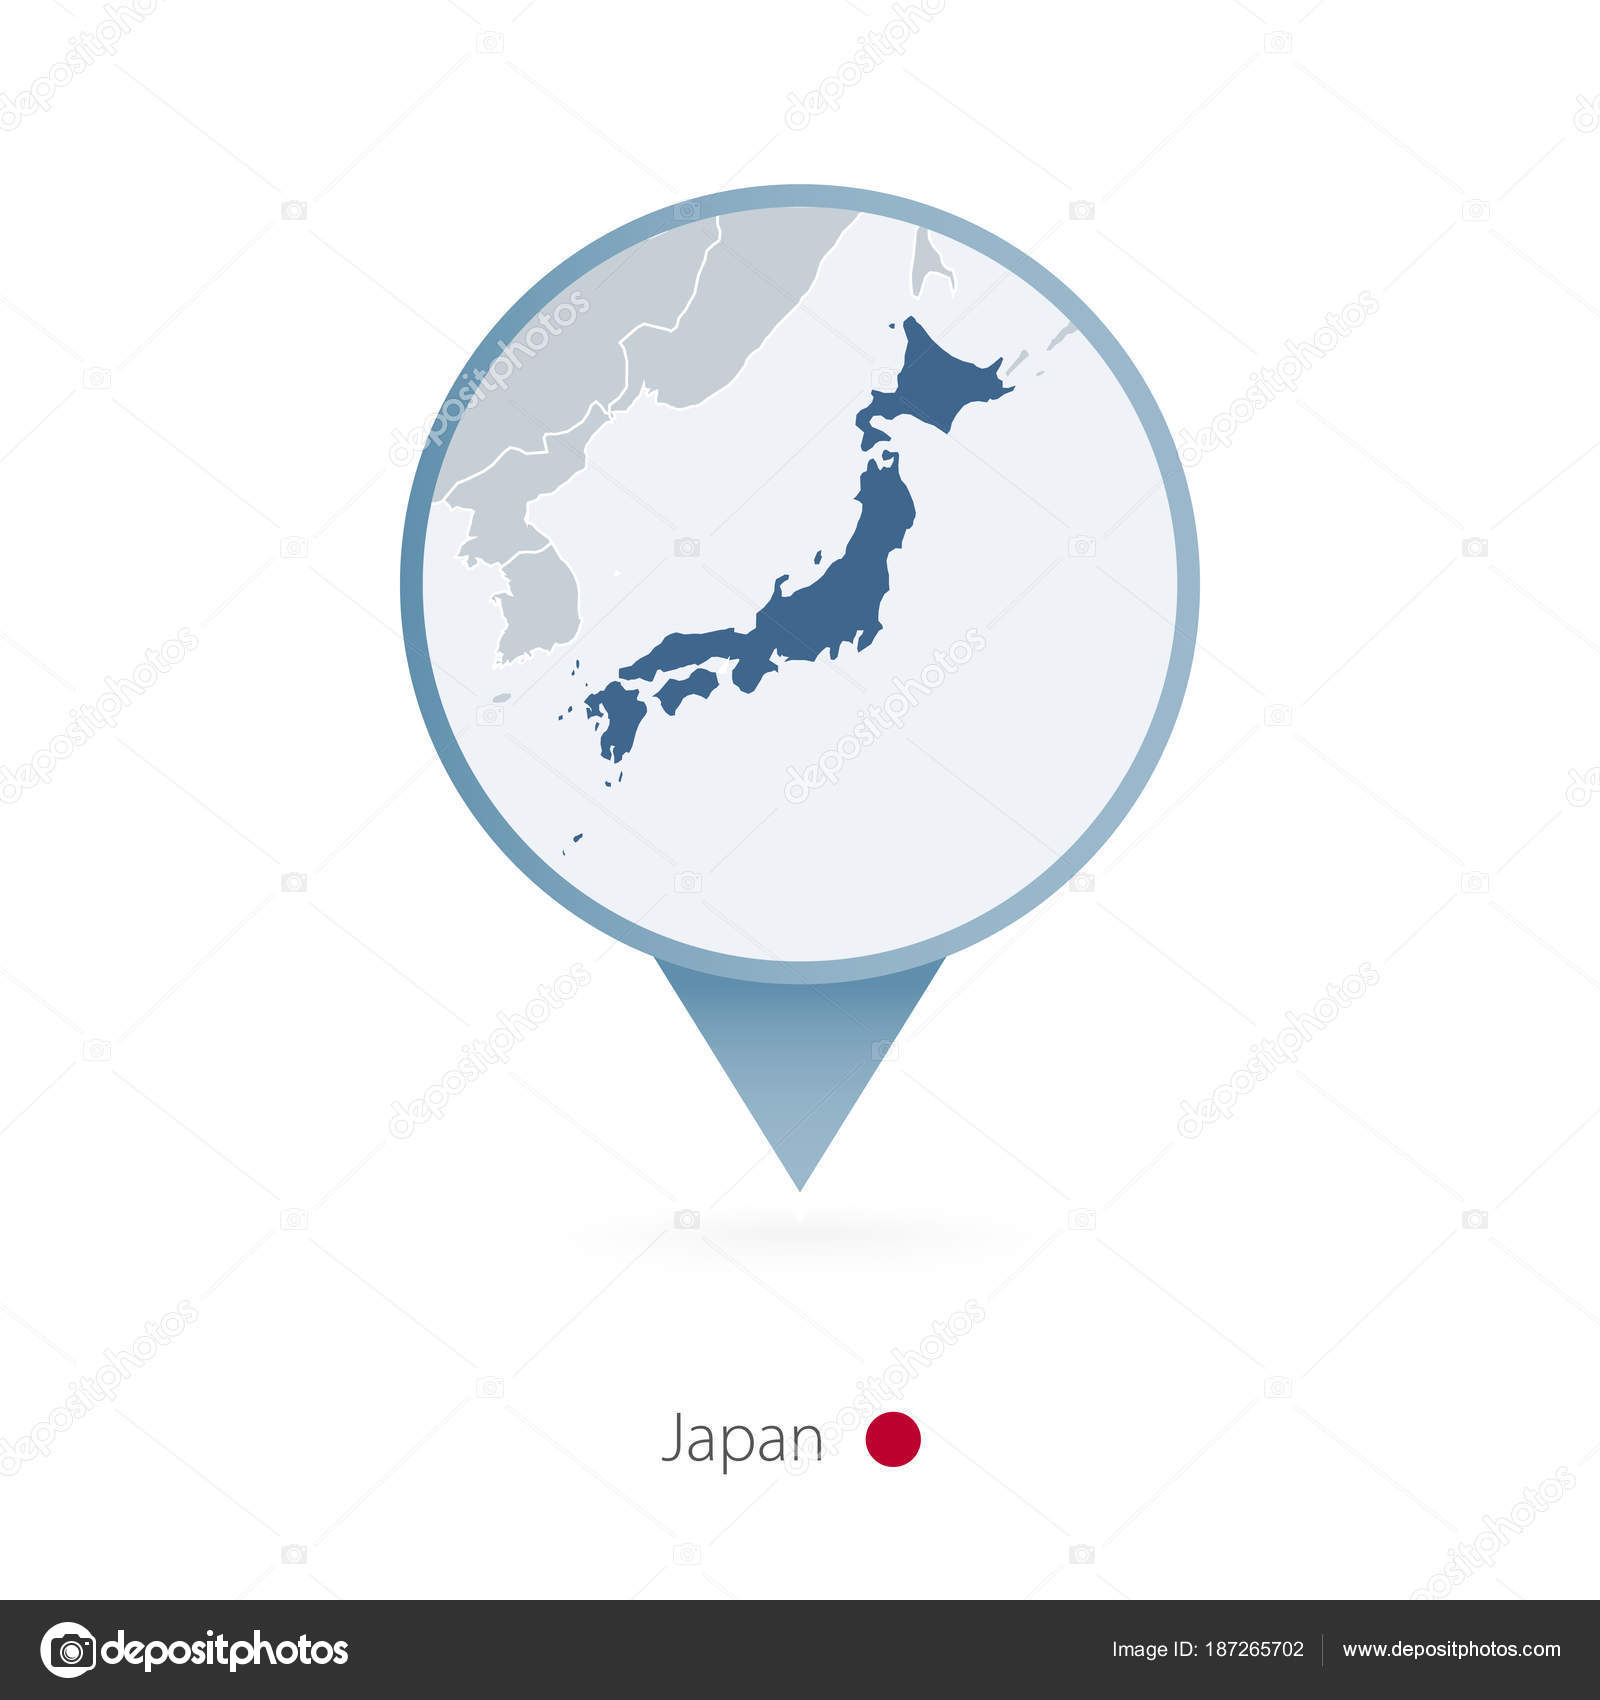 Map Pin With Detailed Map Of Japan And Neighboring Countries